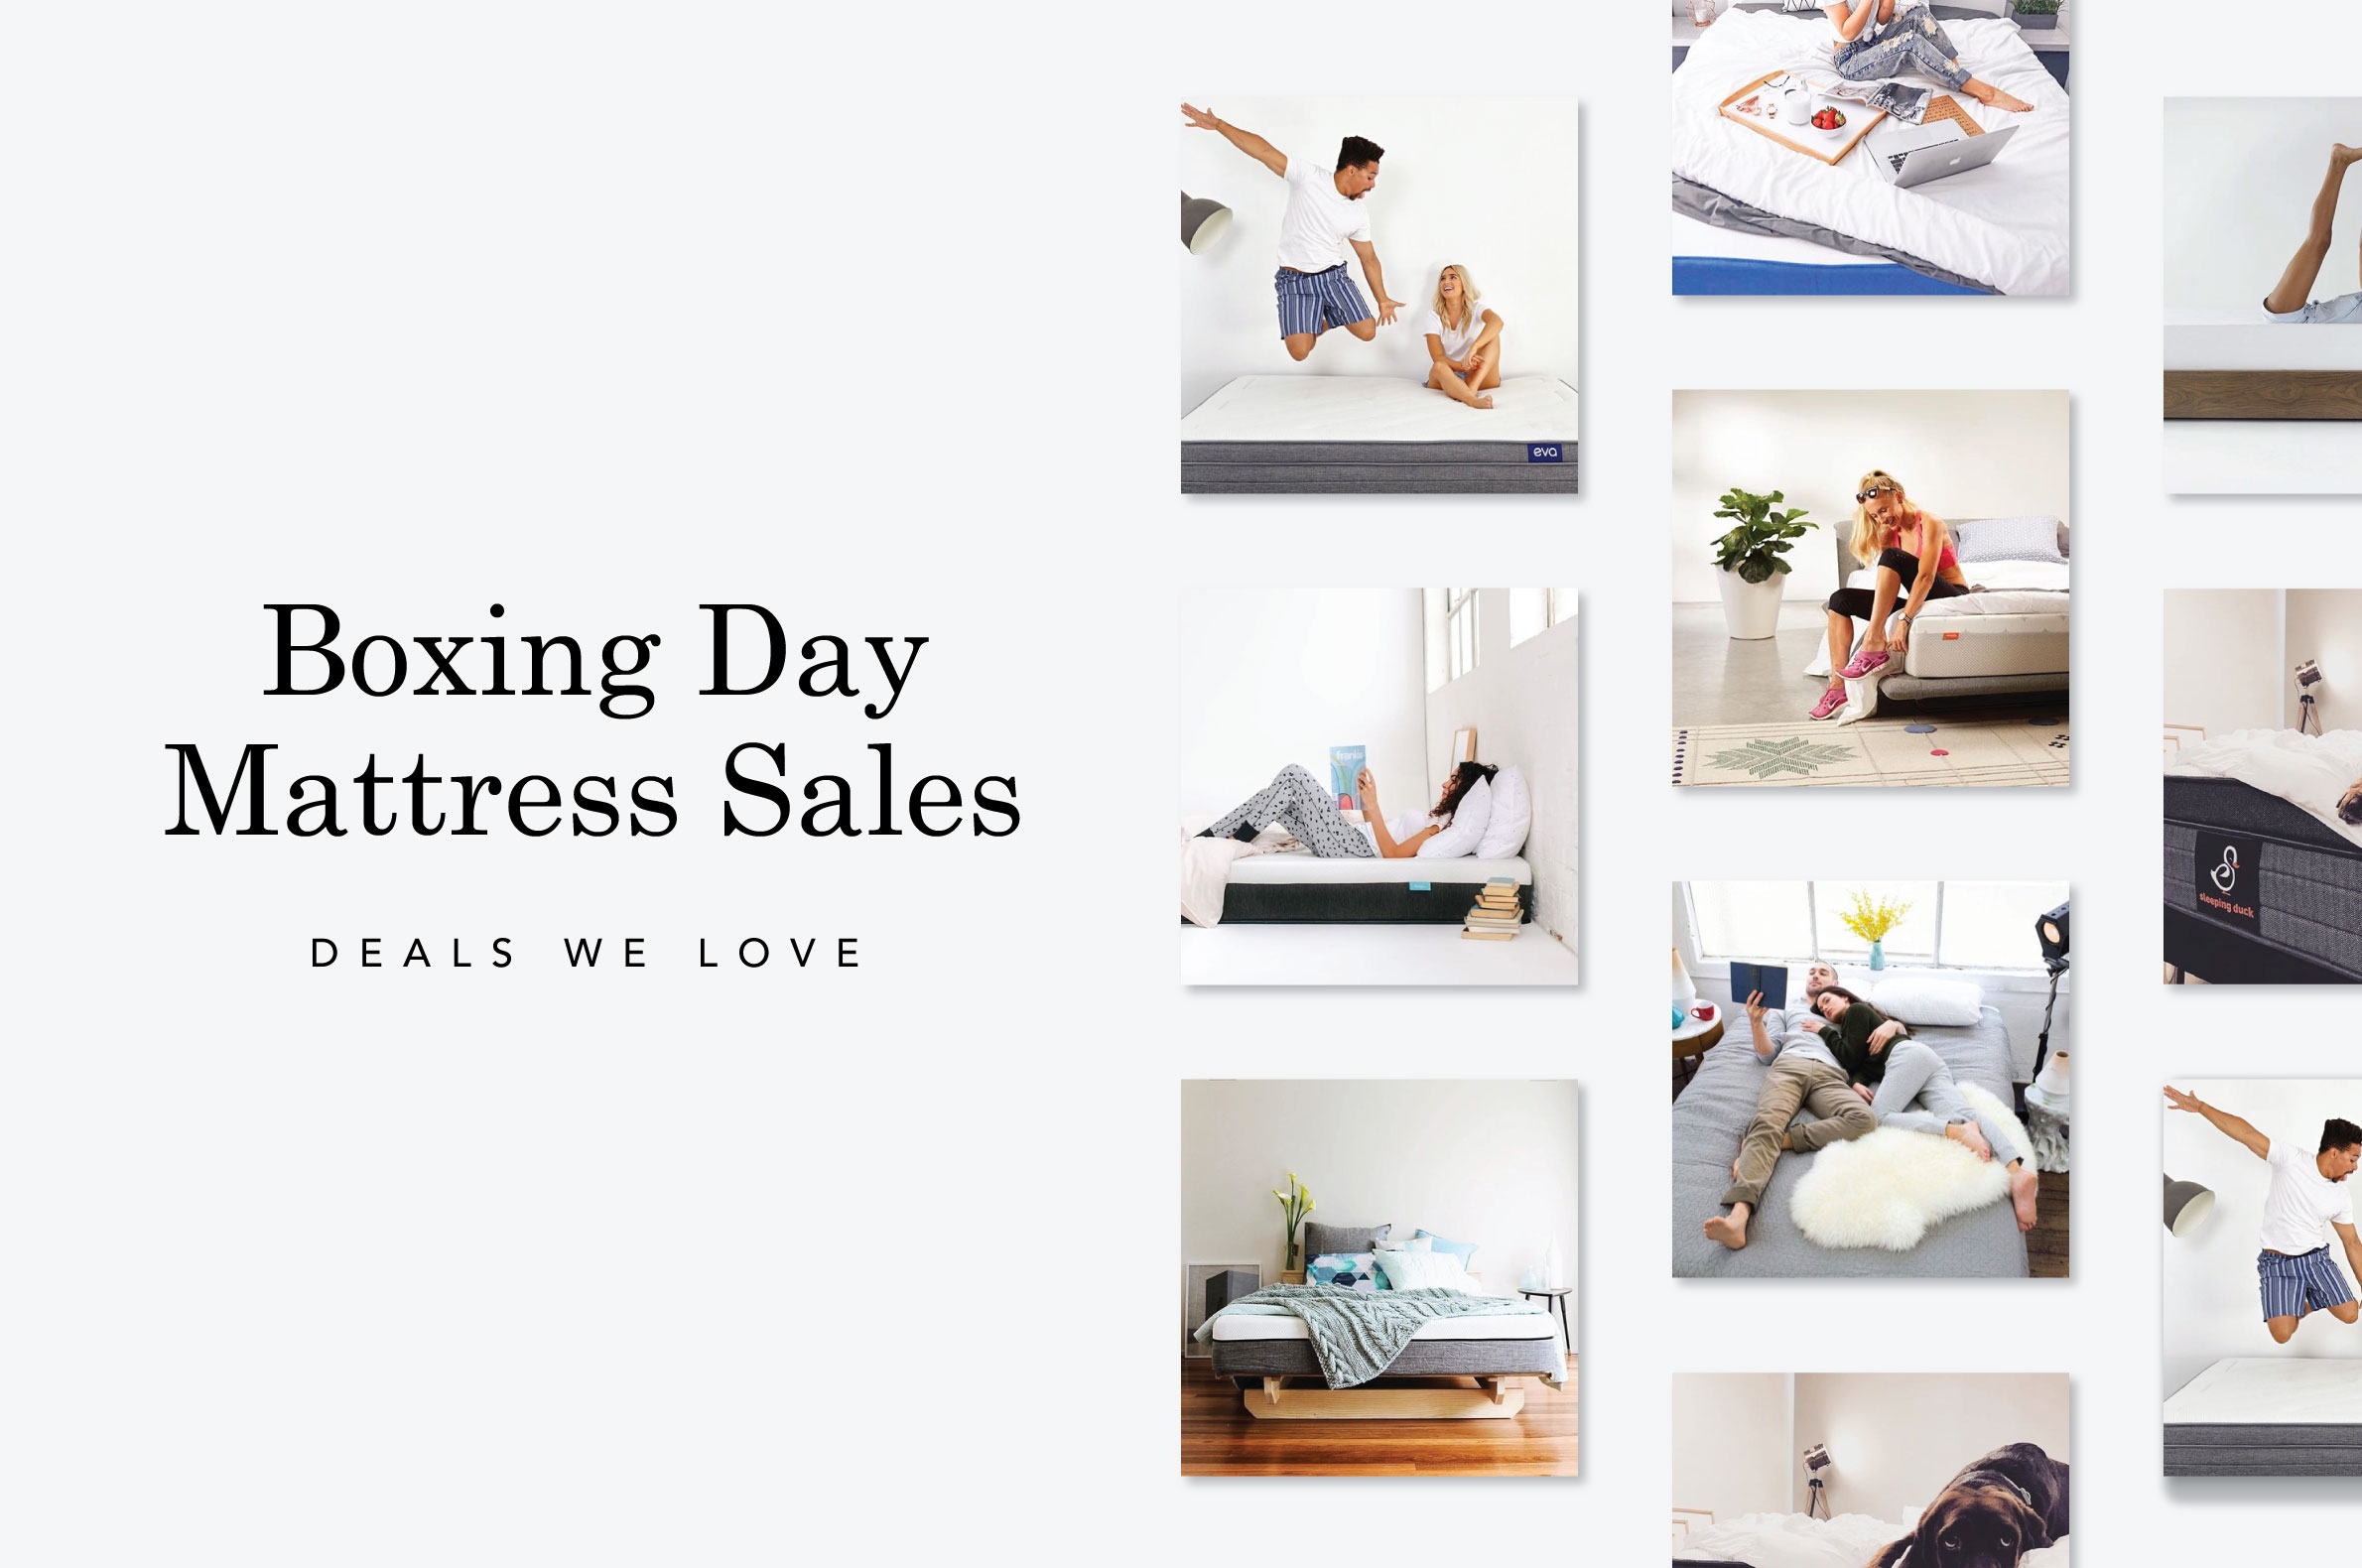 Boxing Day Mattress Sales